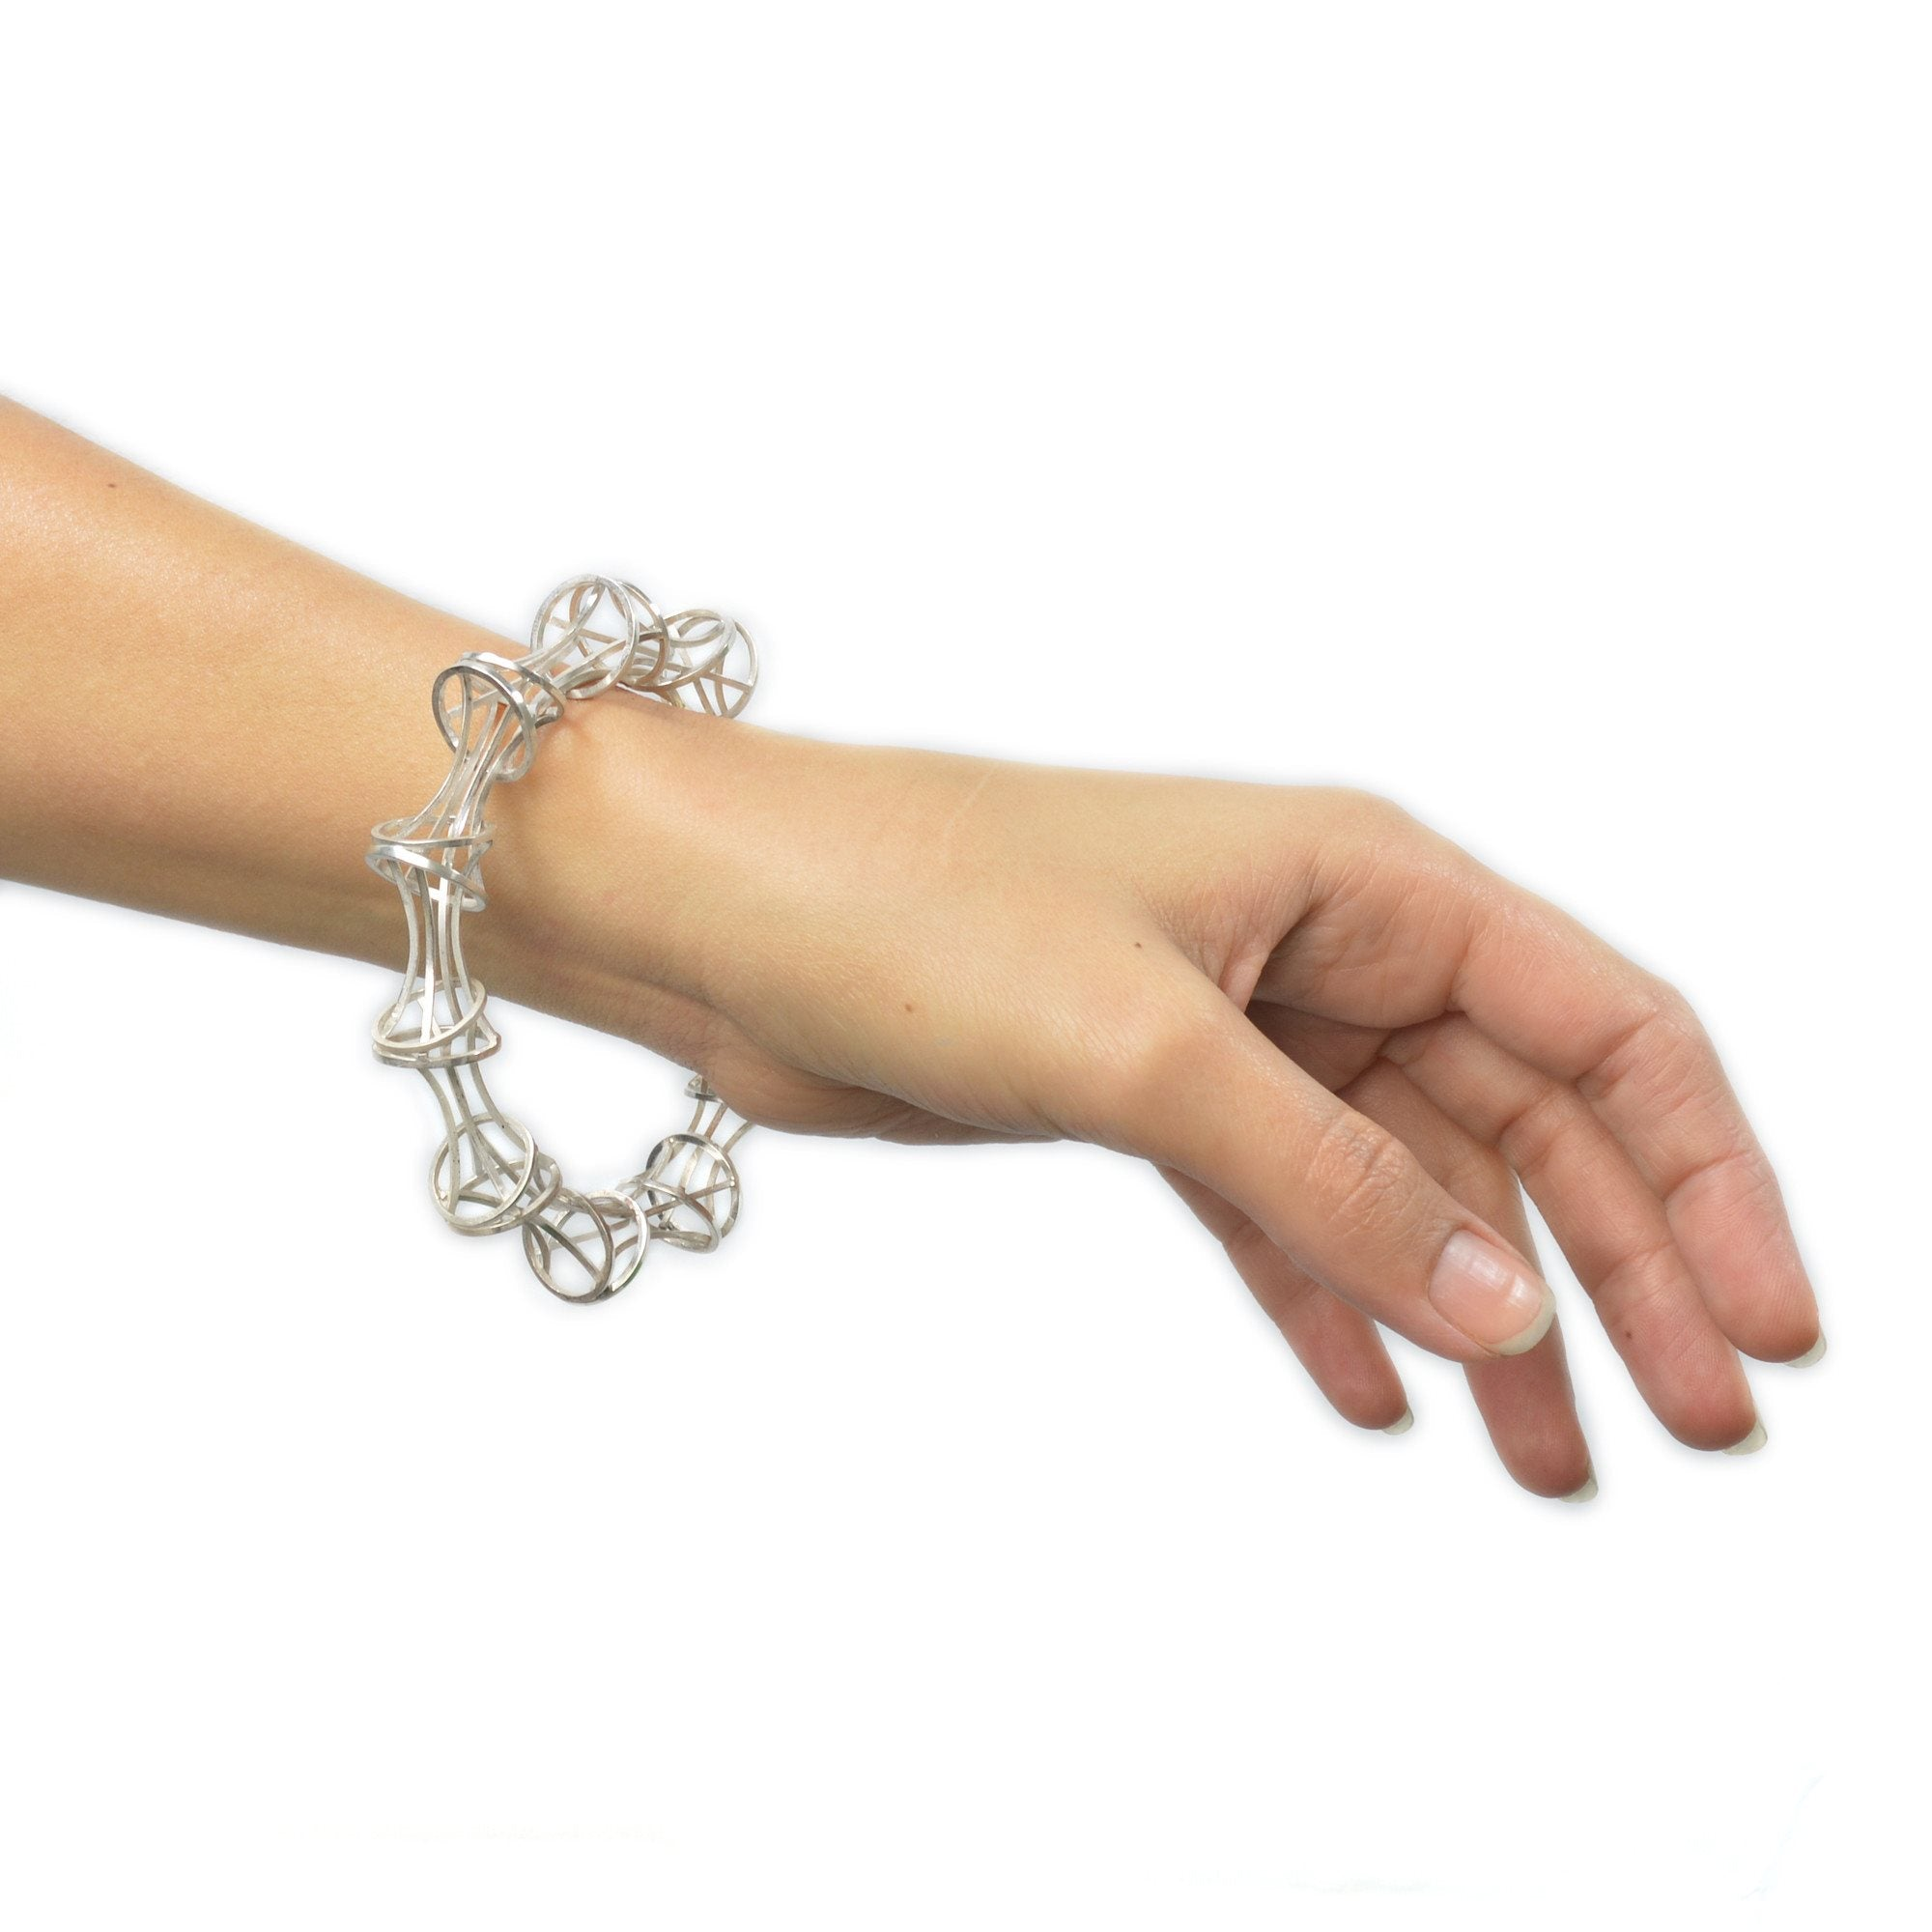 Vertebrae Bangle Bracelet in Sterling Silver